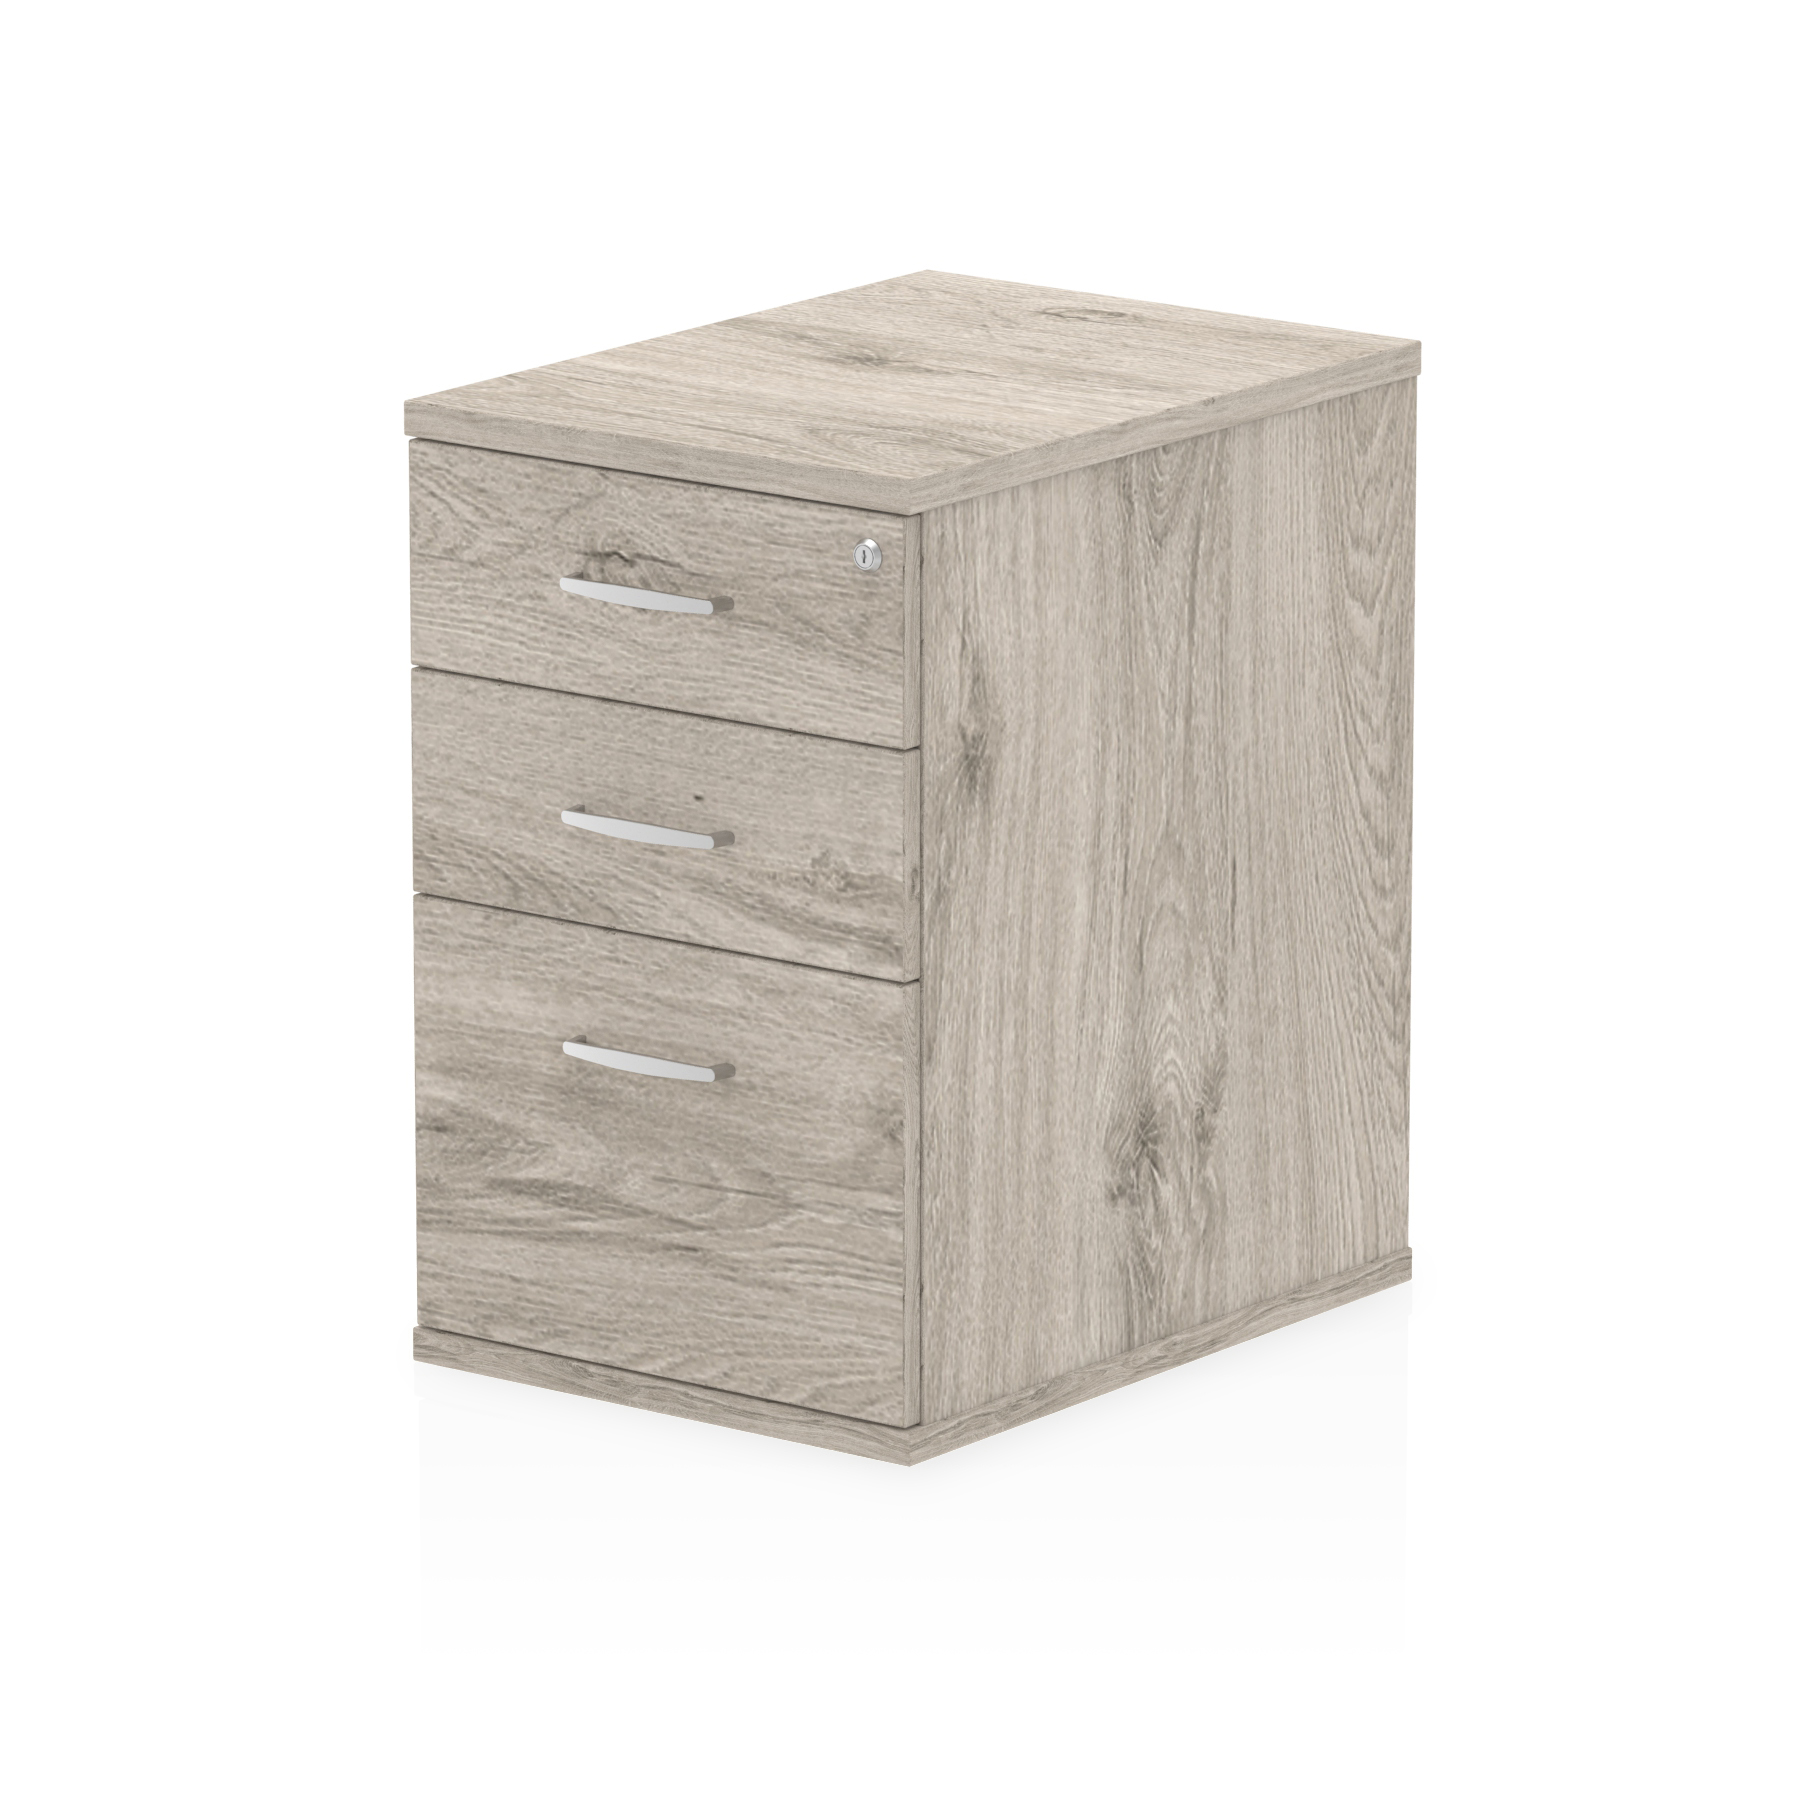 Pedestals Trexus Desk High 3 Drawer 600D Pedestal 425x600x730mm Grey Oak Ref I003221